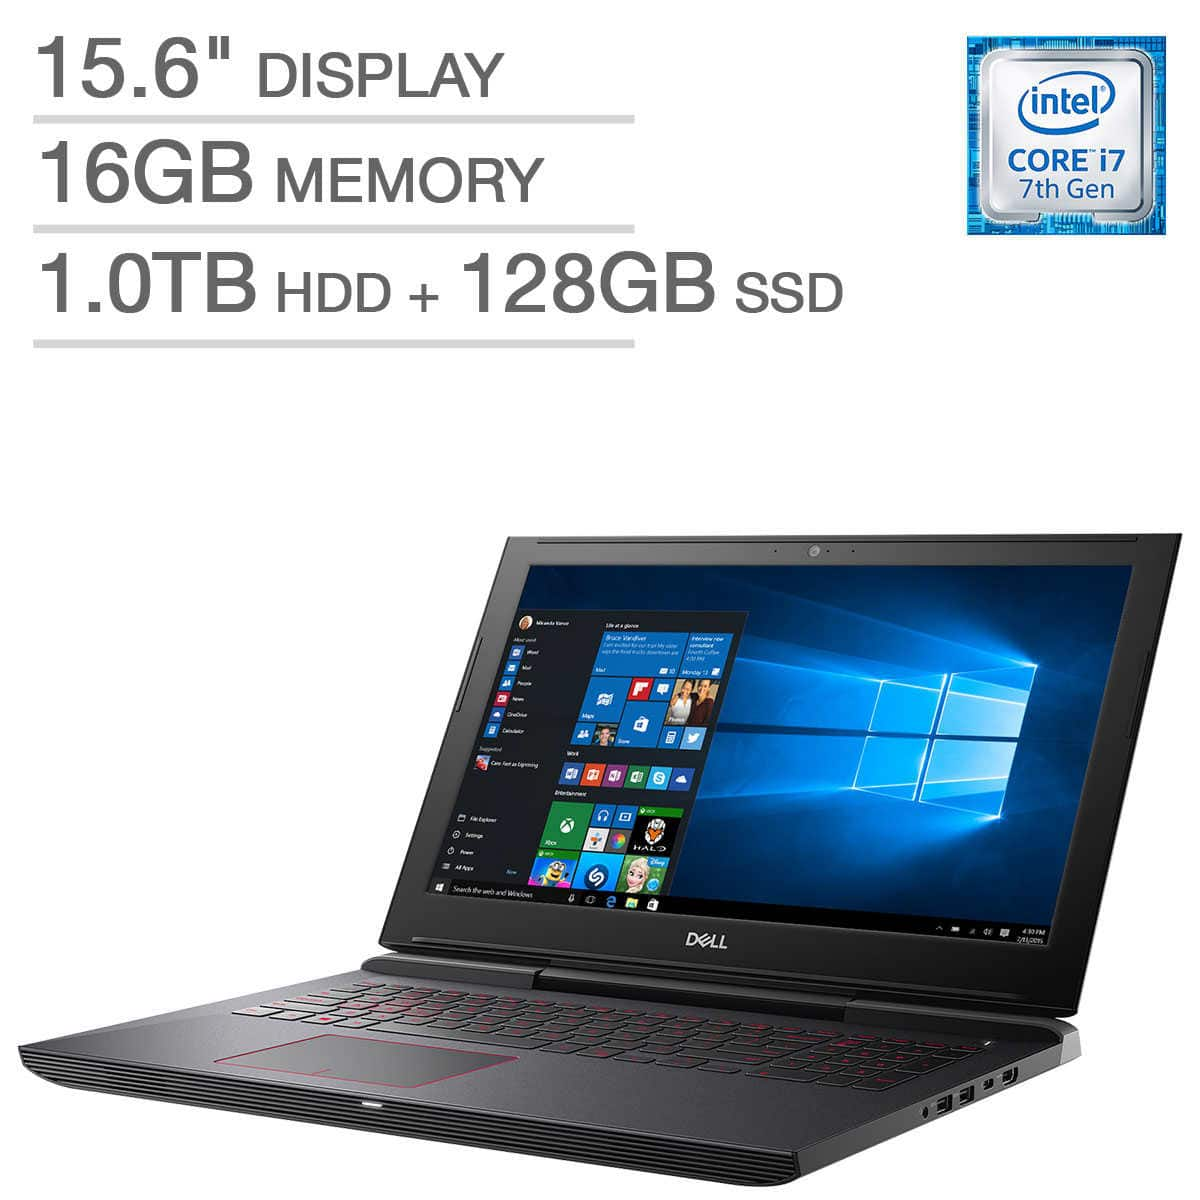 Dell Inspiron 15 7000 Series Gaming Laptop $999